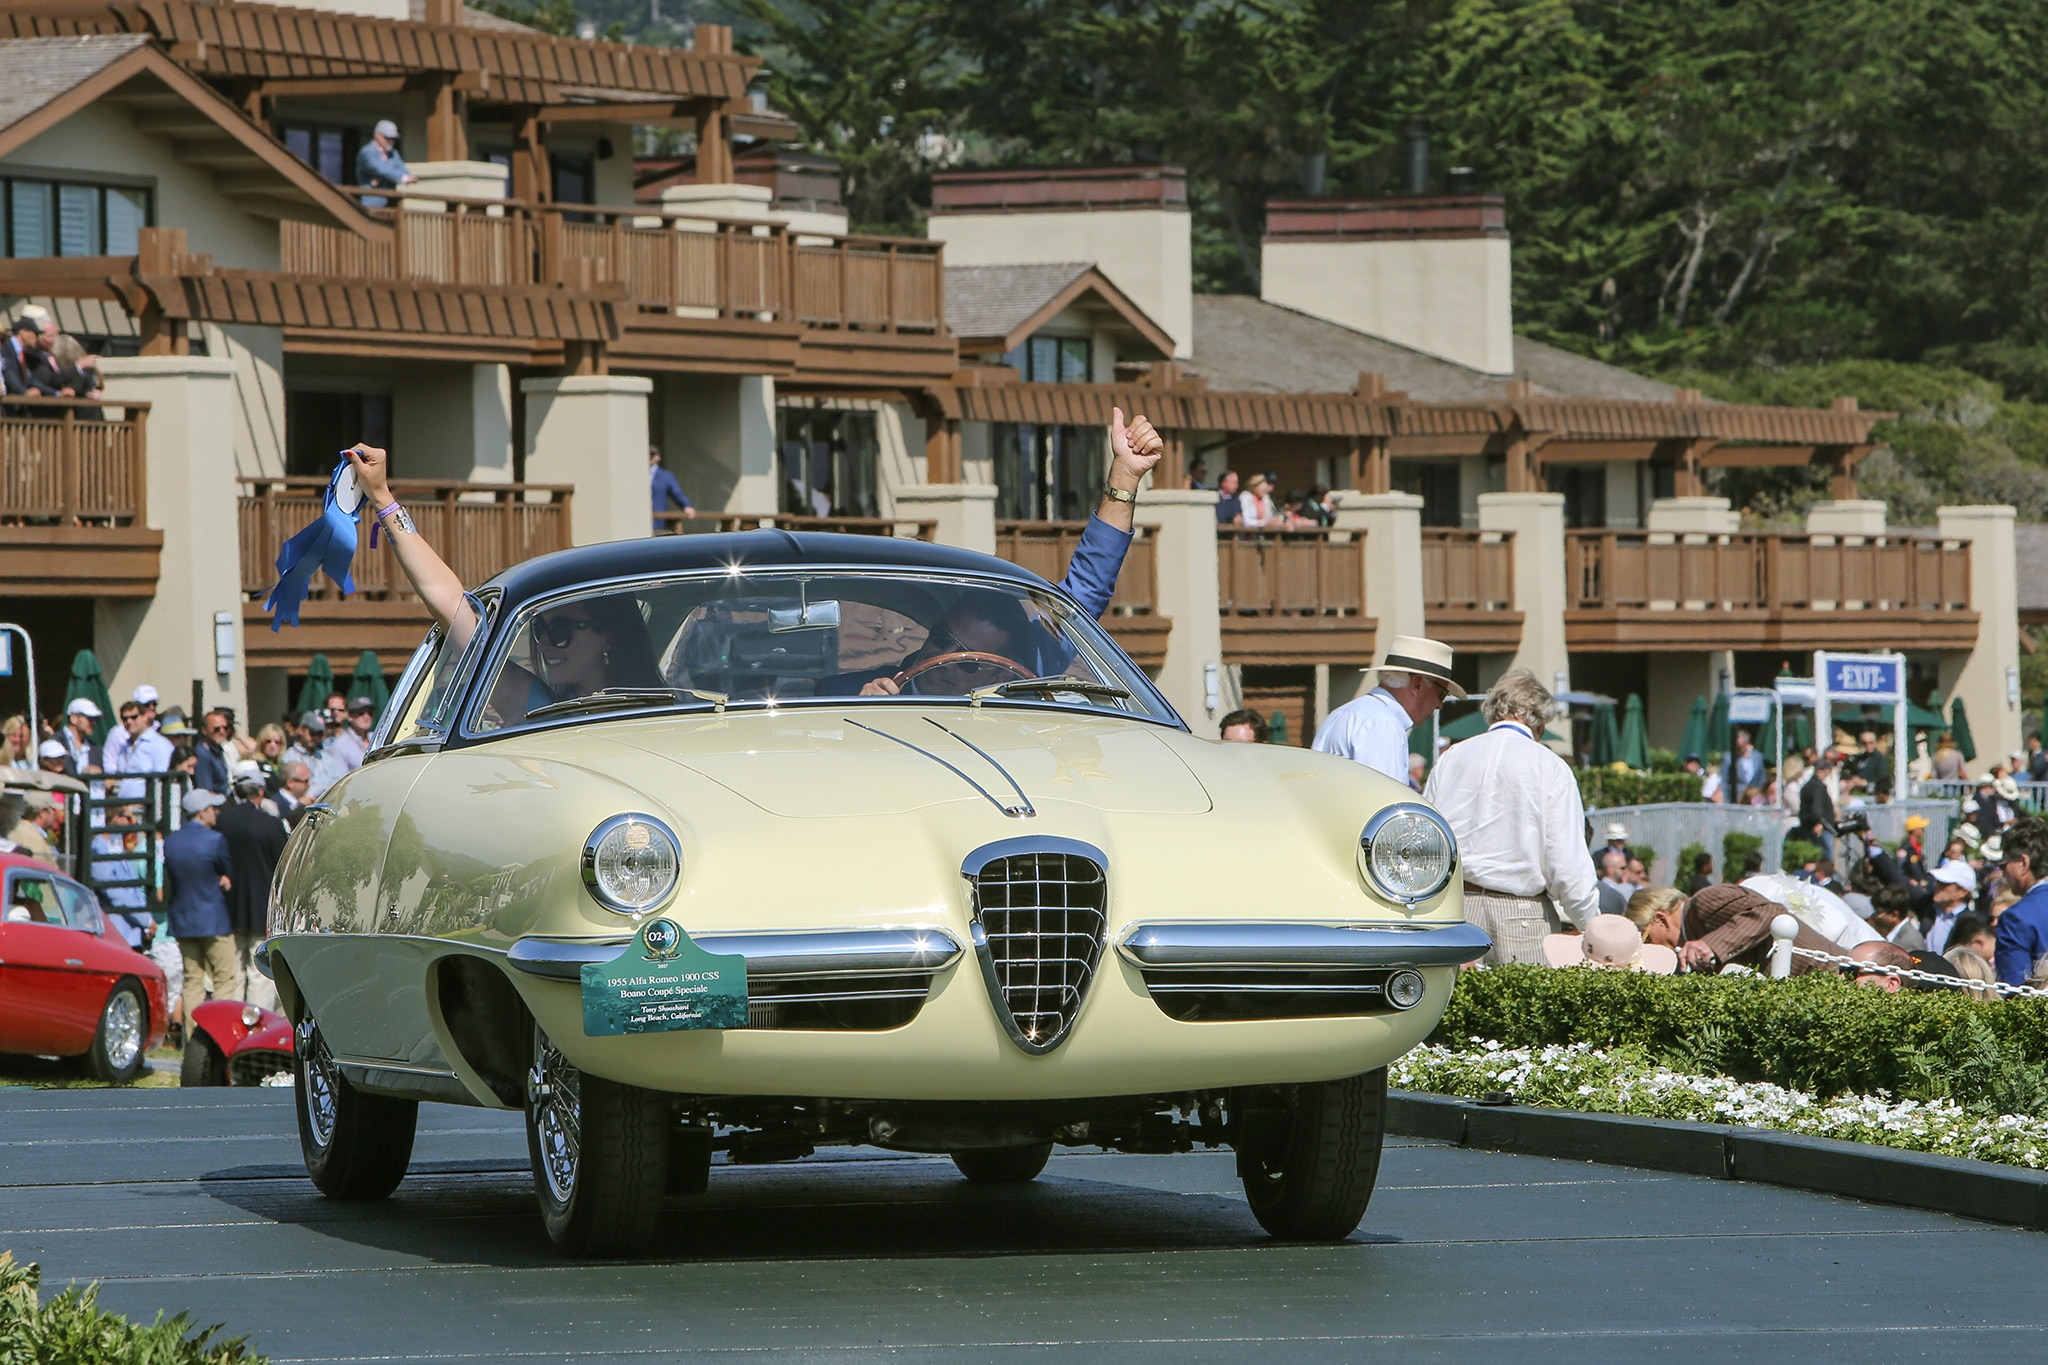 2017 Pebble Beach Concours Ramp Cars 05 1955 Alfa Romeo 1900CSS Boano Coupe Speciale